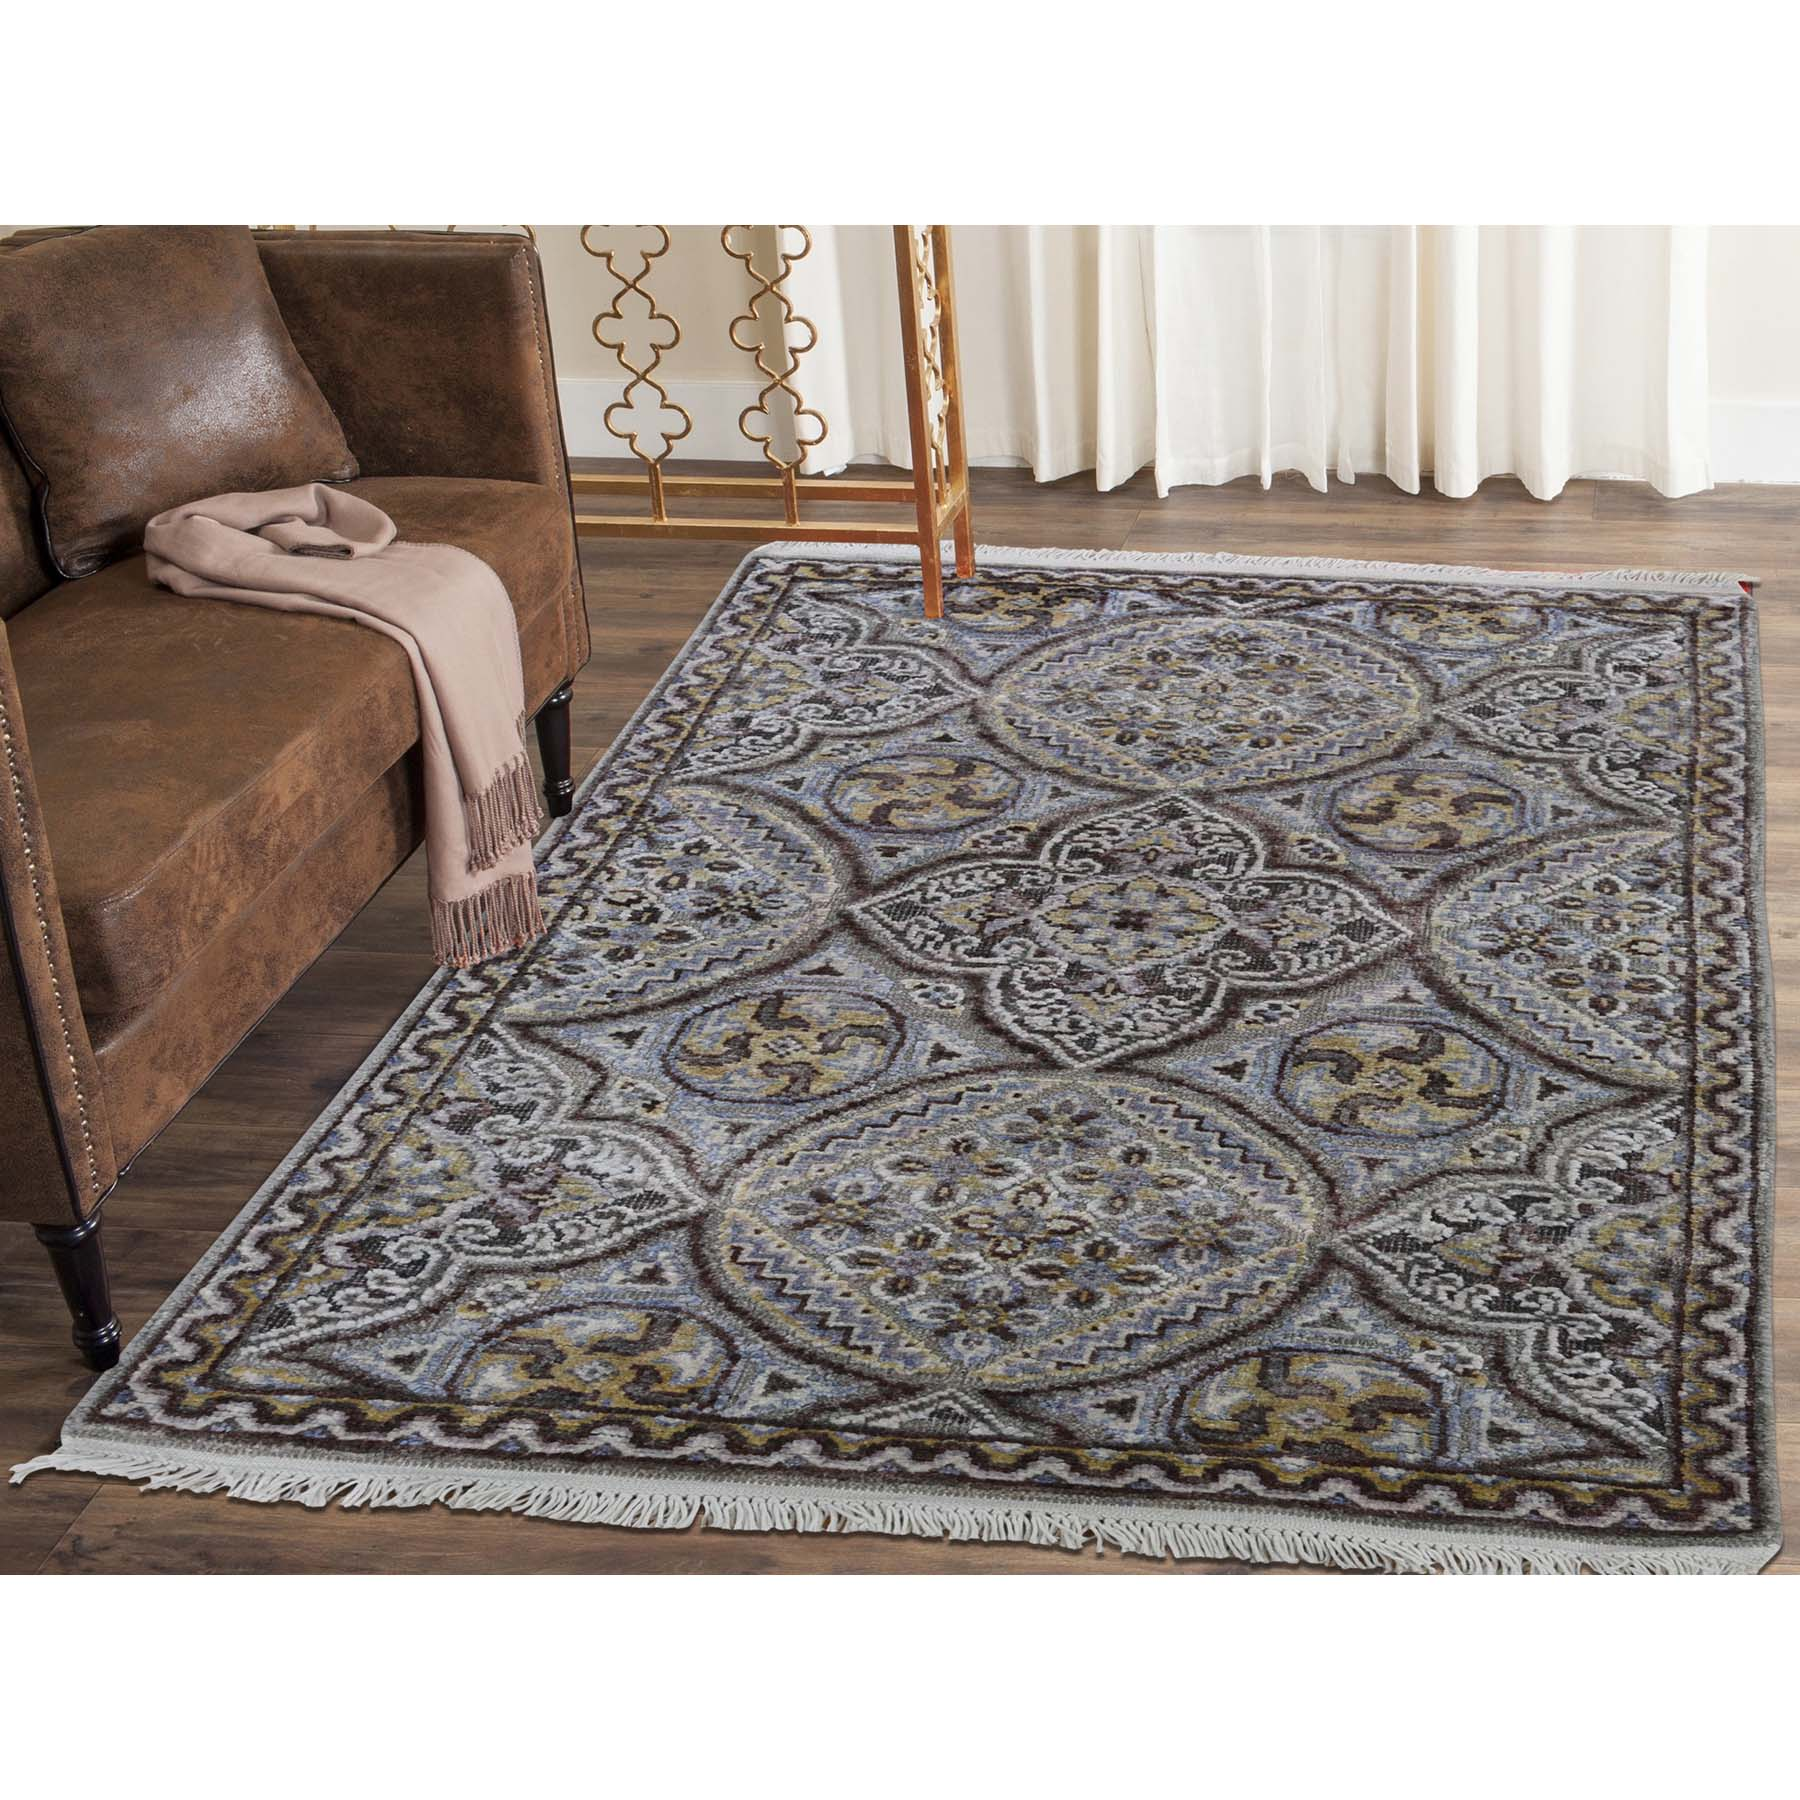 2-1 x3-2  Mughal Inspired Medallions Oxidized Wool and Silk Hand-Knotted Oriental Rug